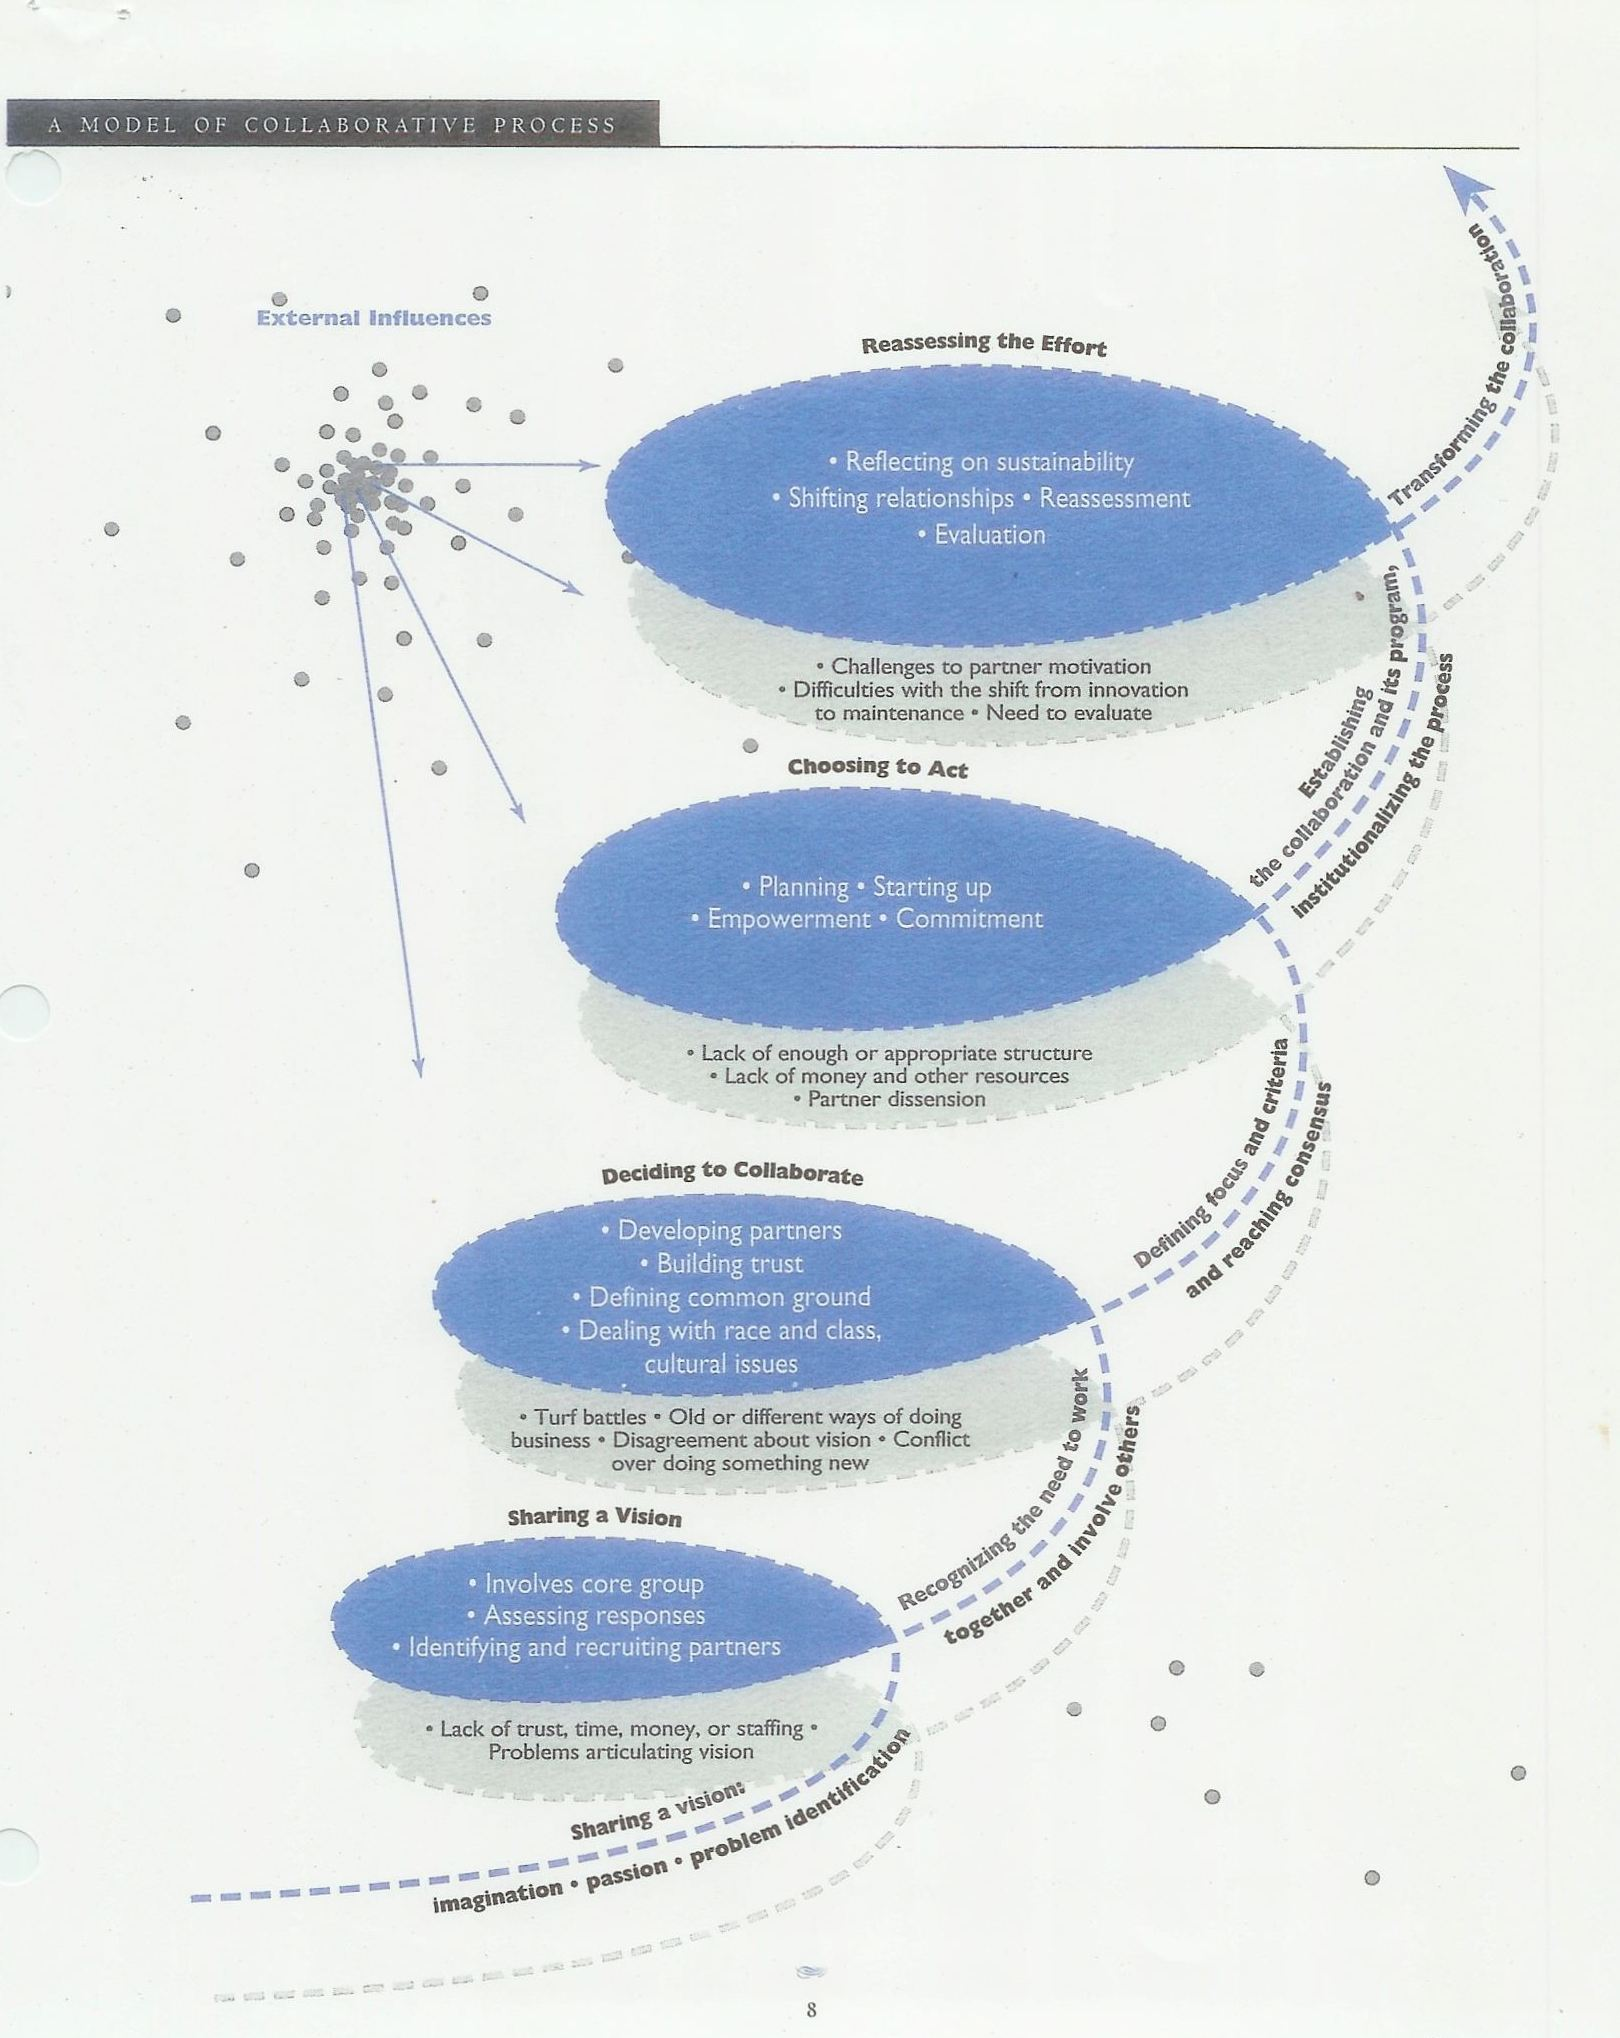 A taxonomy of Collaboration for the John D. and Catherine T. MacArthur Collaboration project in 1994